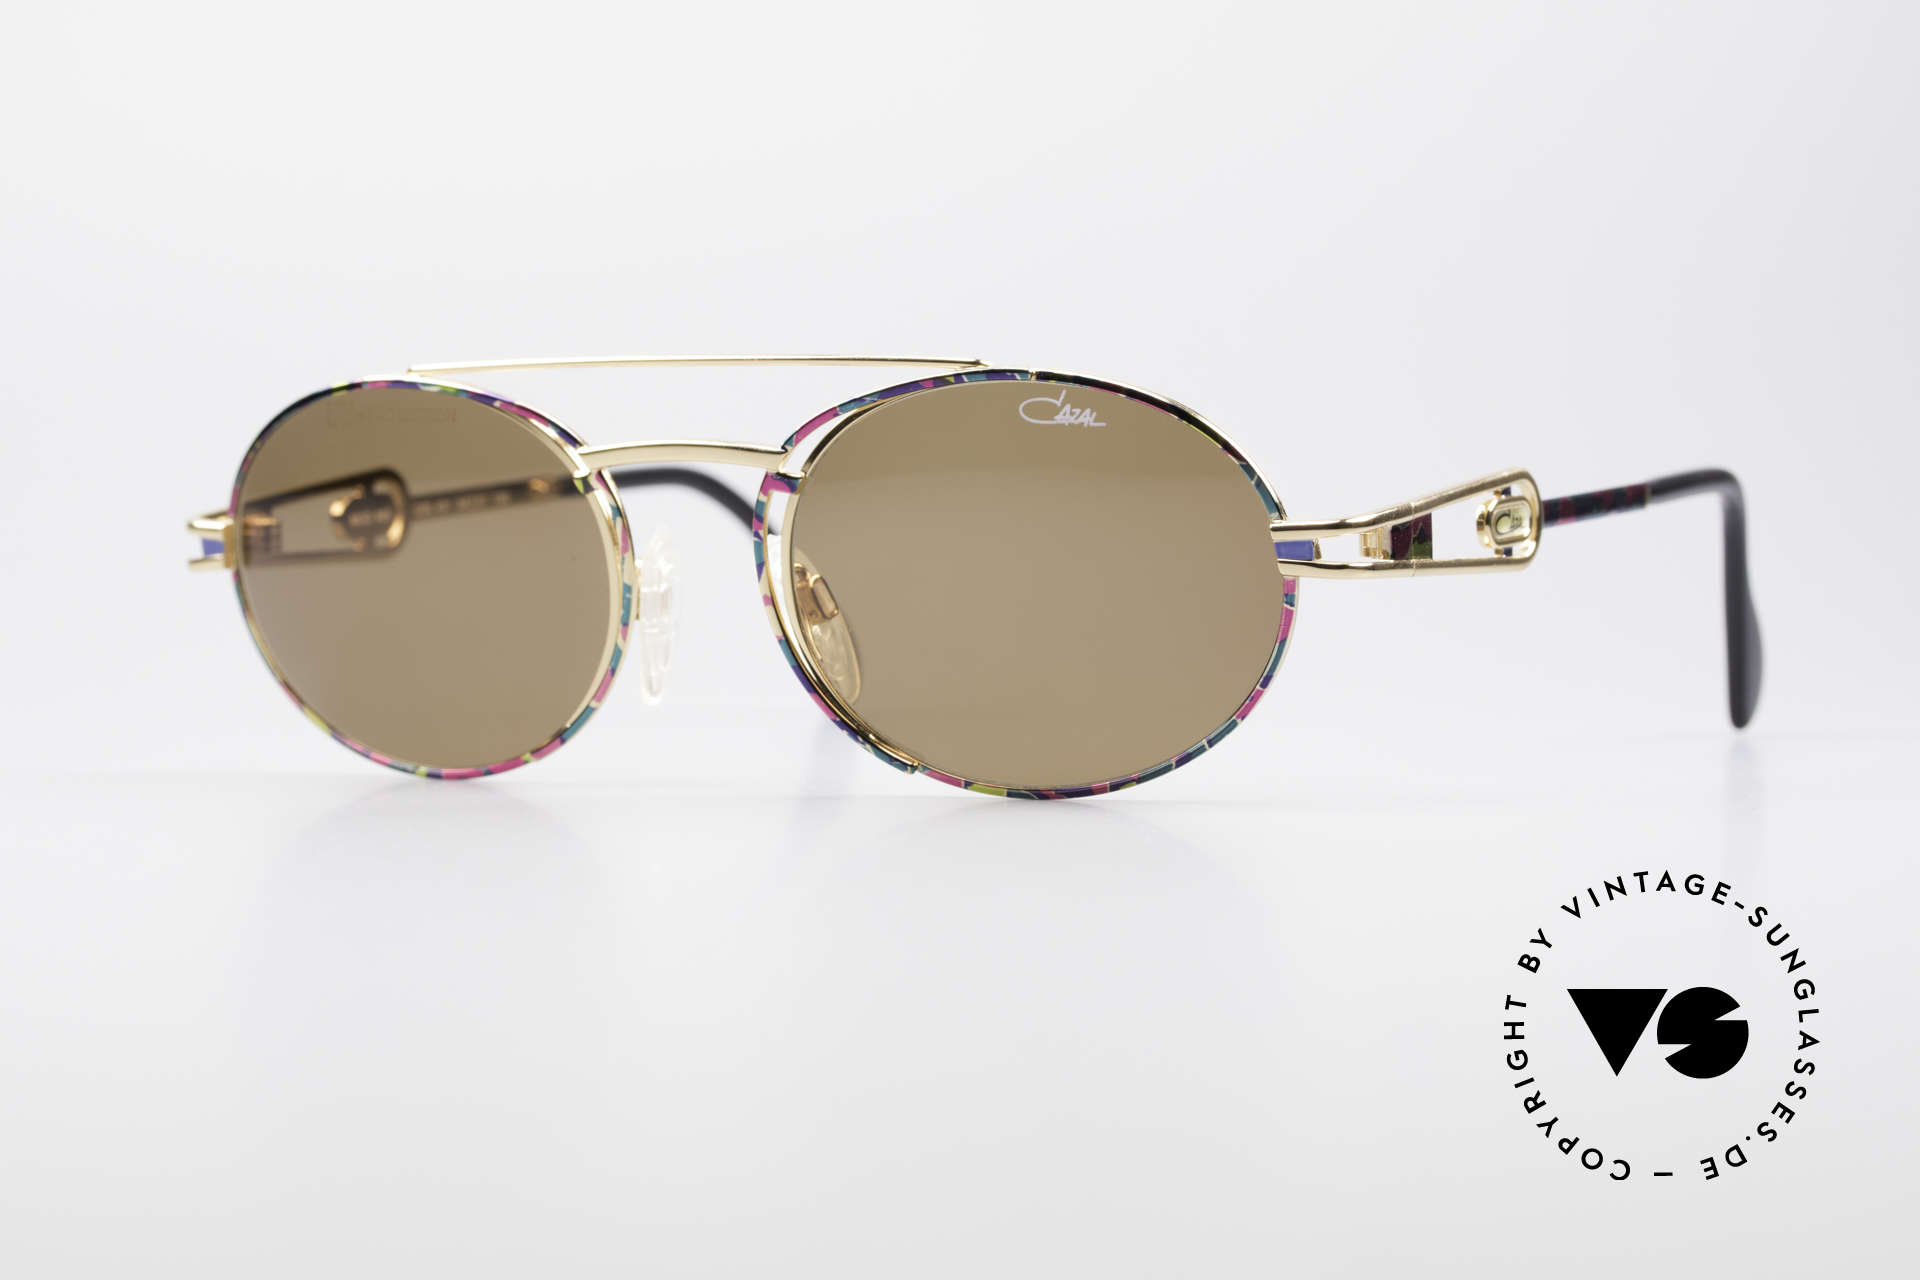 Cazal 965 90's Steampunk Style Shades, very striking vintage sunglasses by CAZAL from 1996, Made for Men and Women